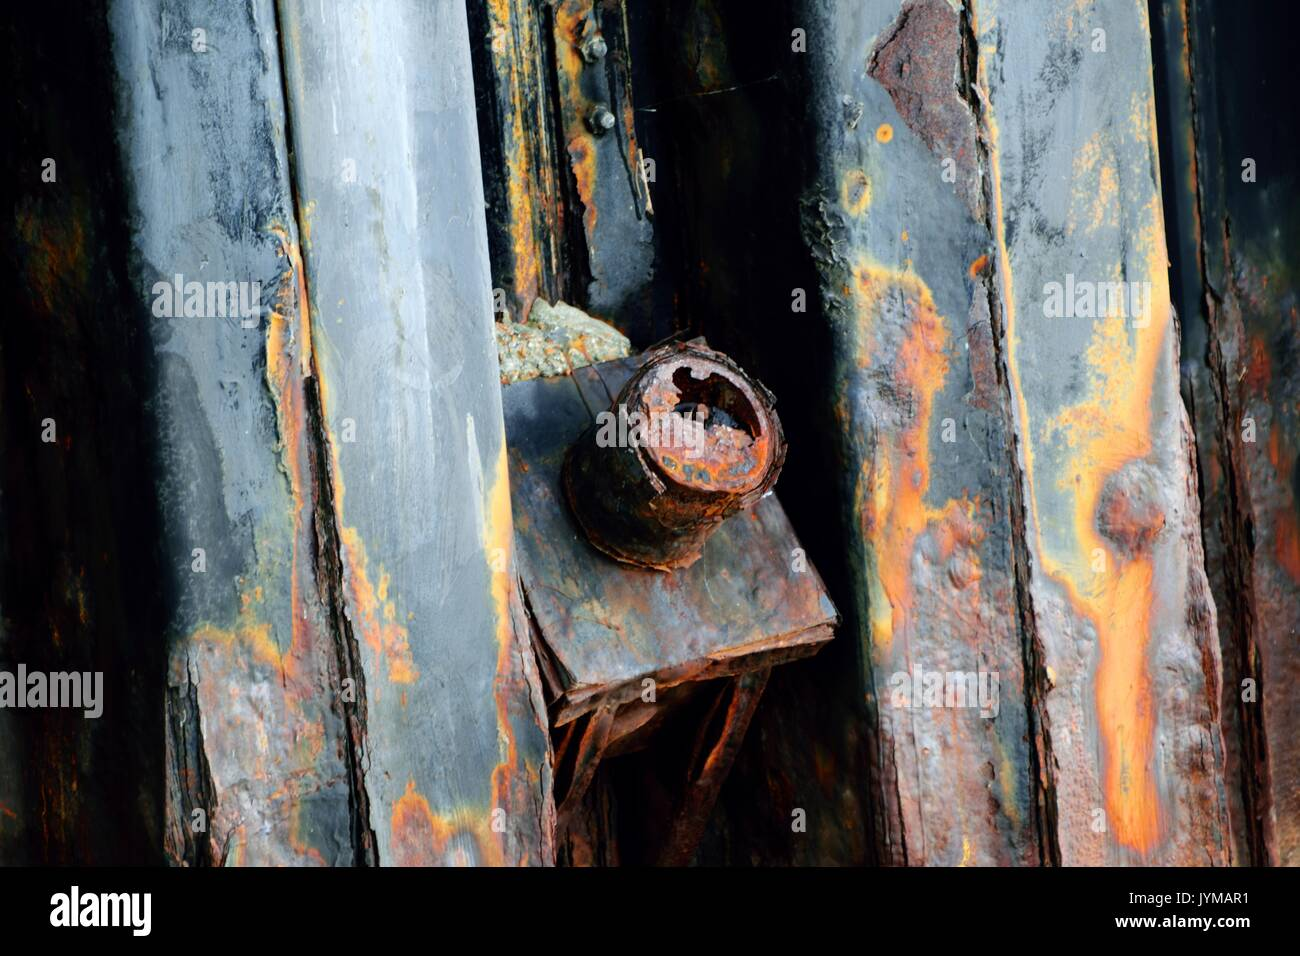 Sheet pile river wall with structural anchor showing anchor head in bad condition - Stock Image